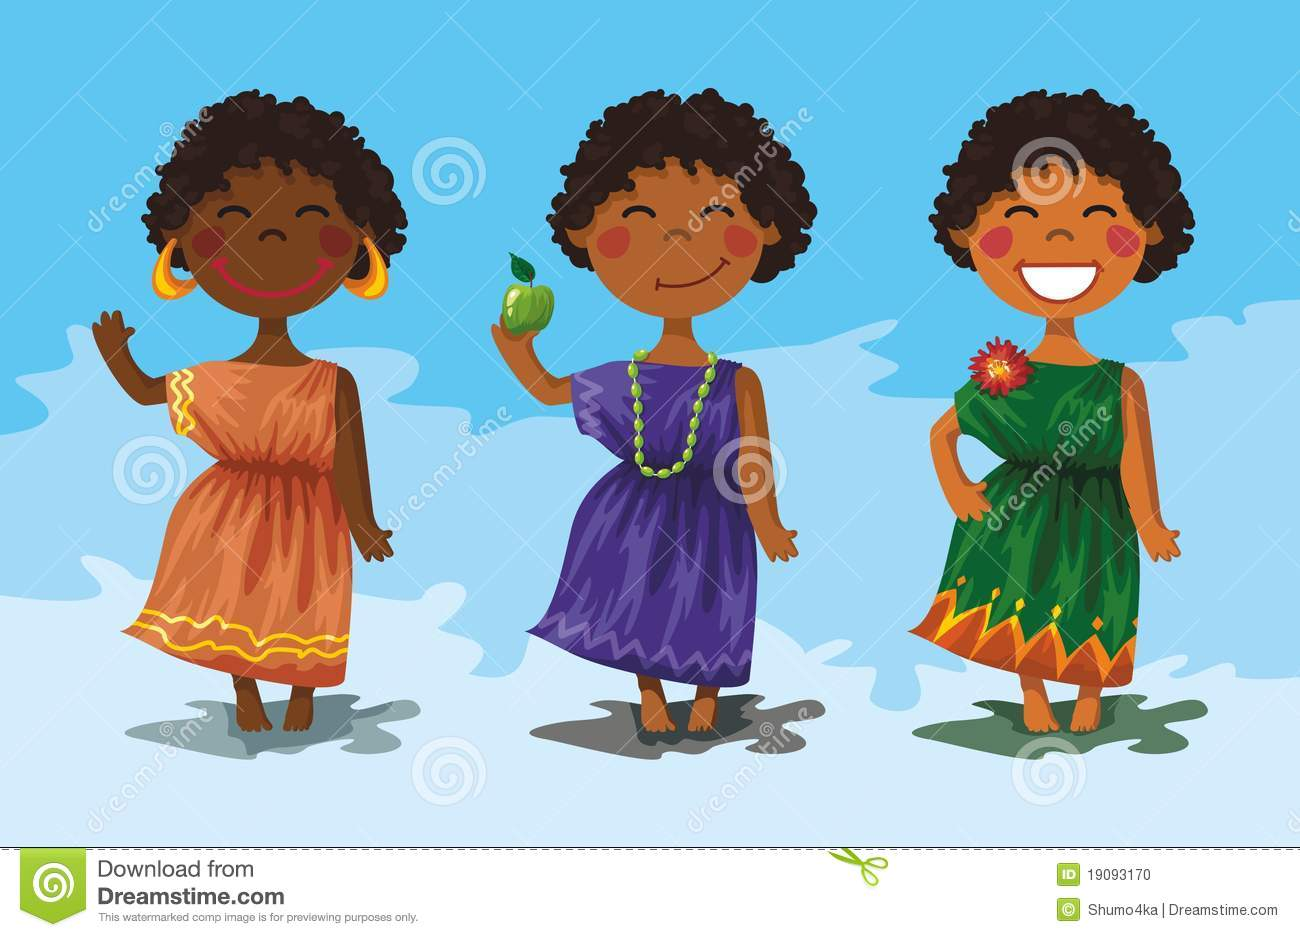 3 Cartoon Character Images : Cartoon characters cute african girls stock photo